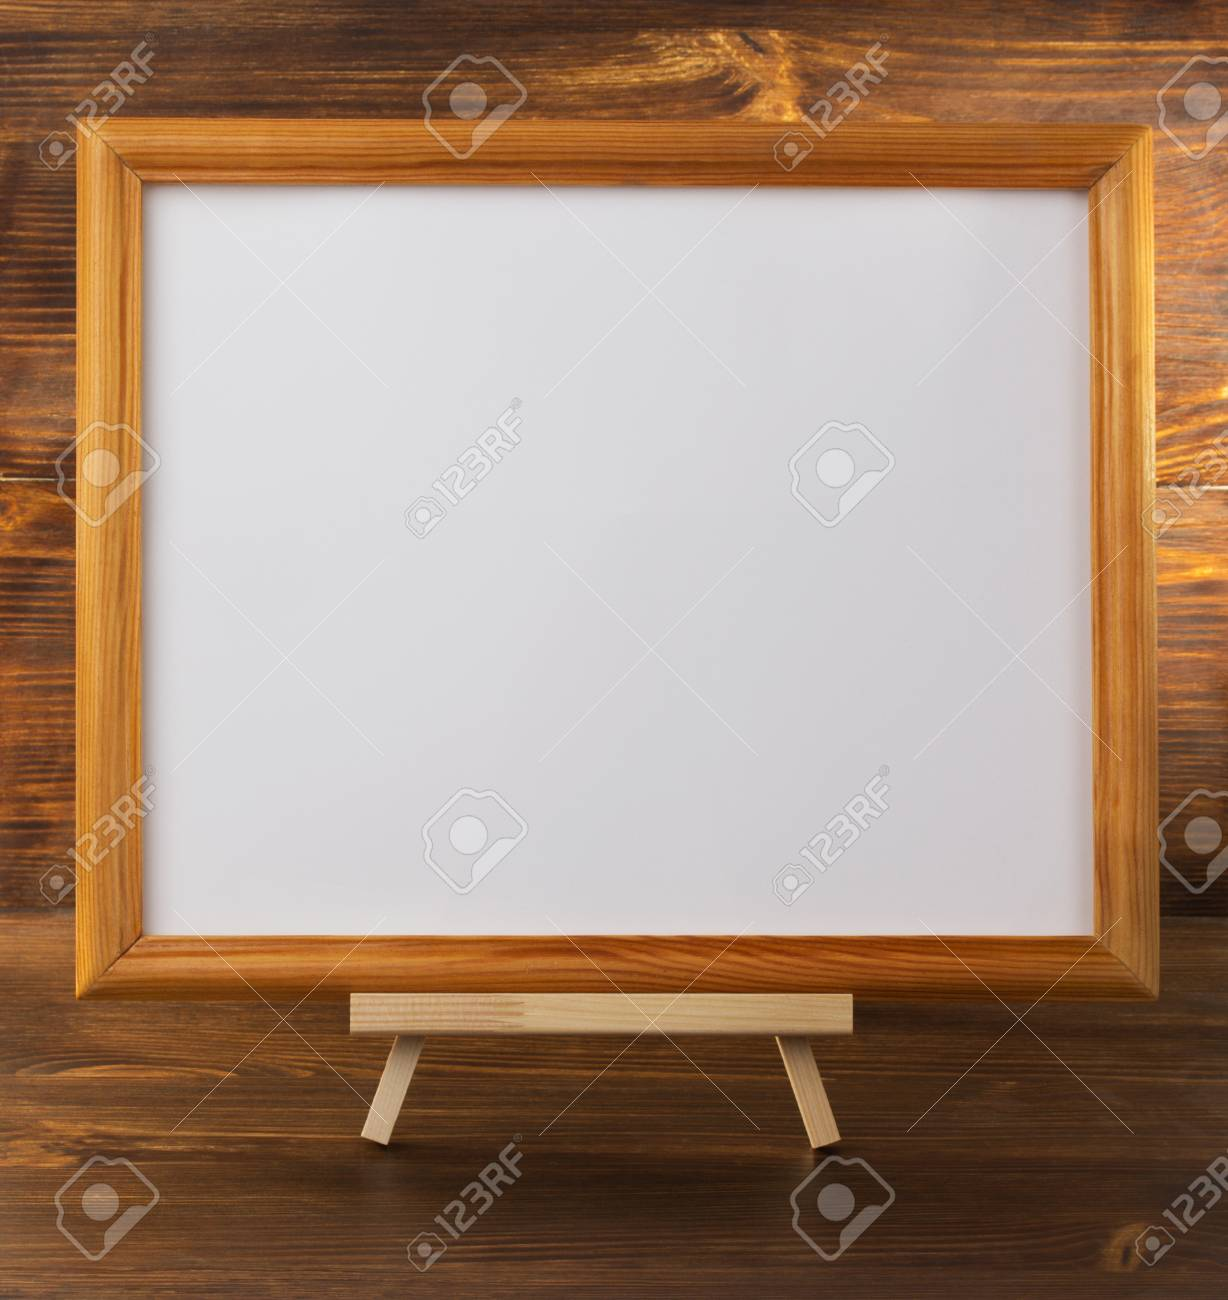 Paint Frame On Wooden Background Stock Photo, Picture And Royalty ...